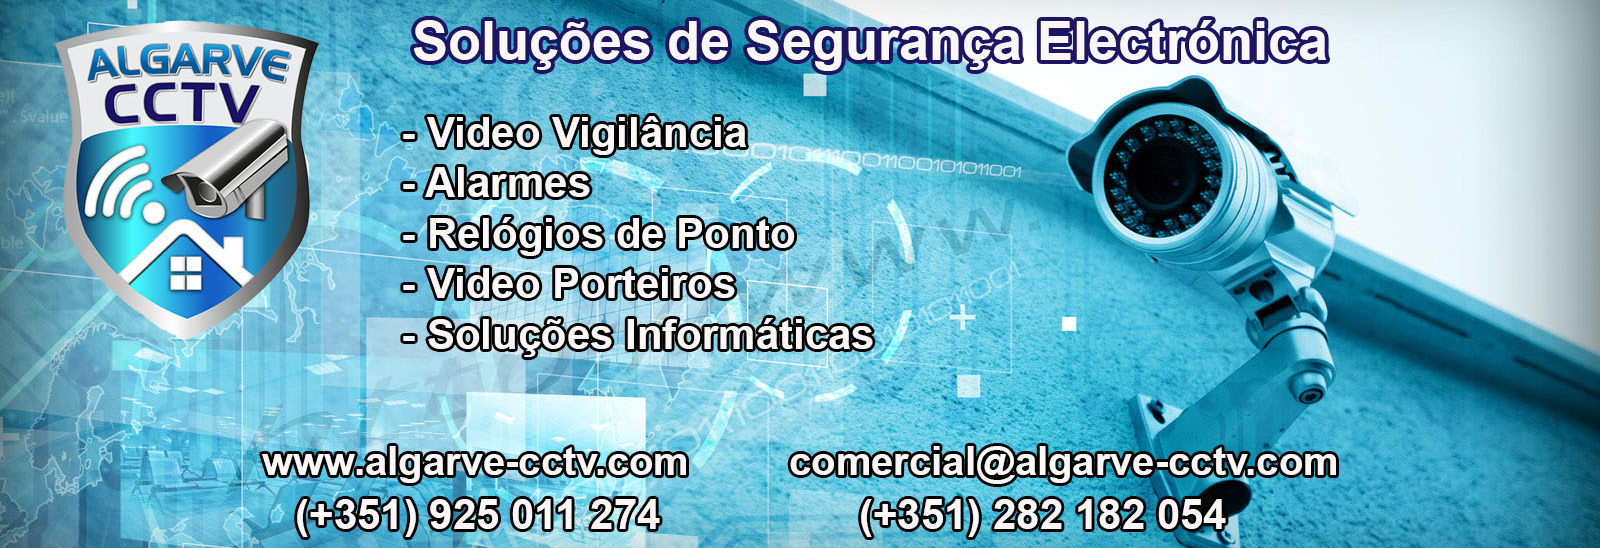 Blog Algarve-CCTV